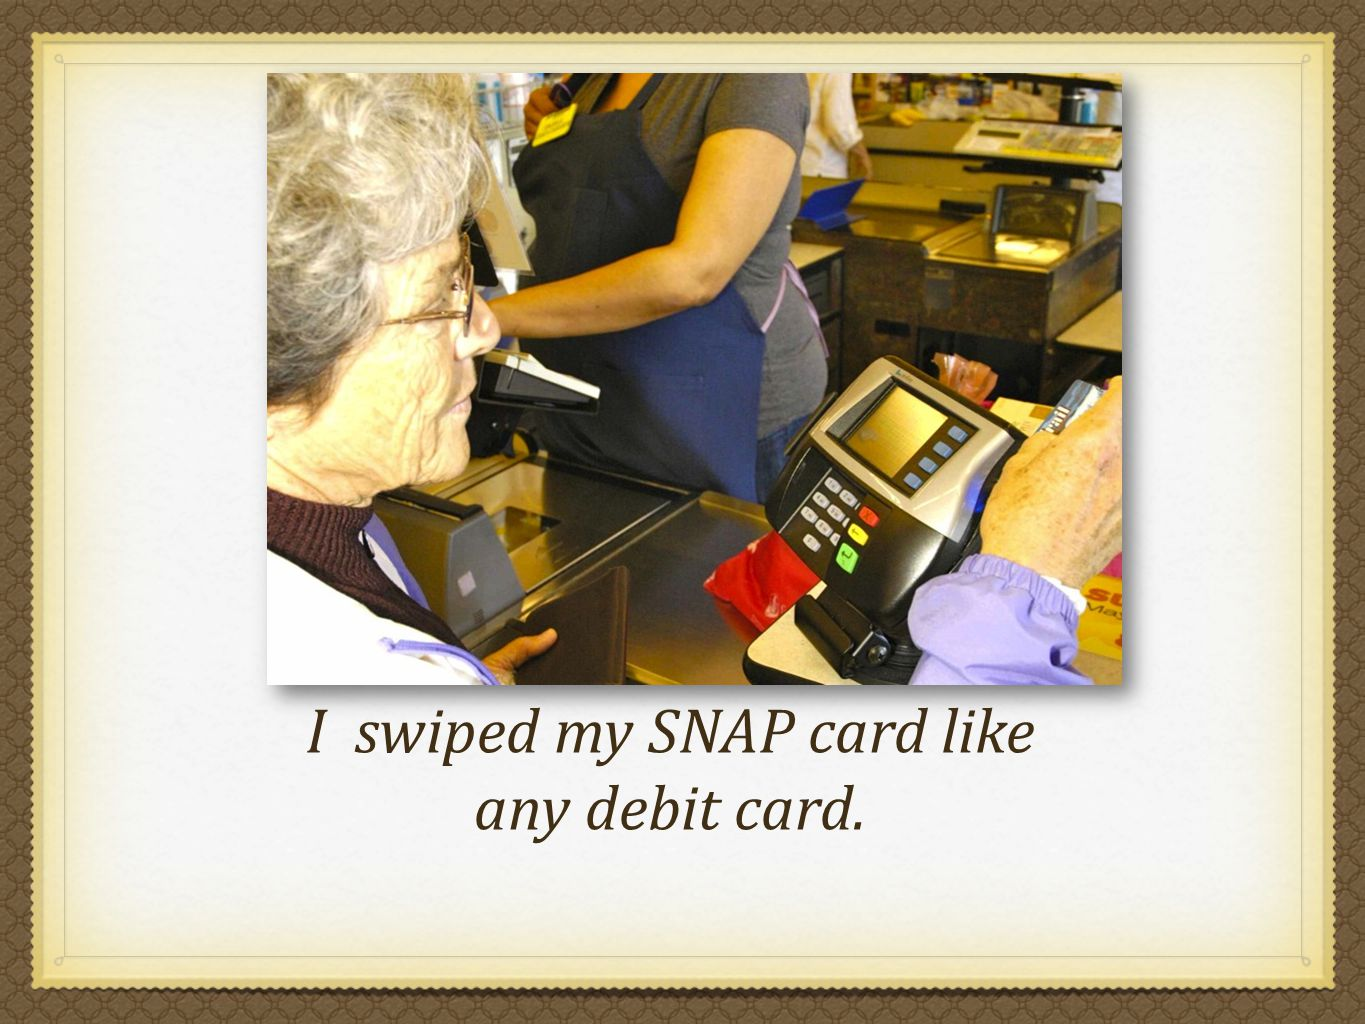 I swiped my SNAP card like any debit card.